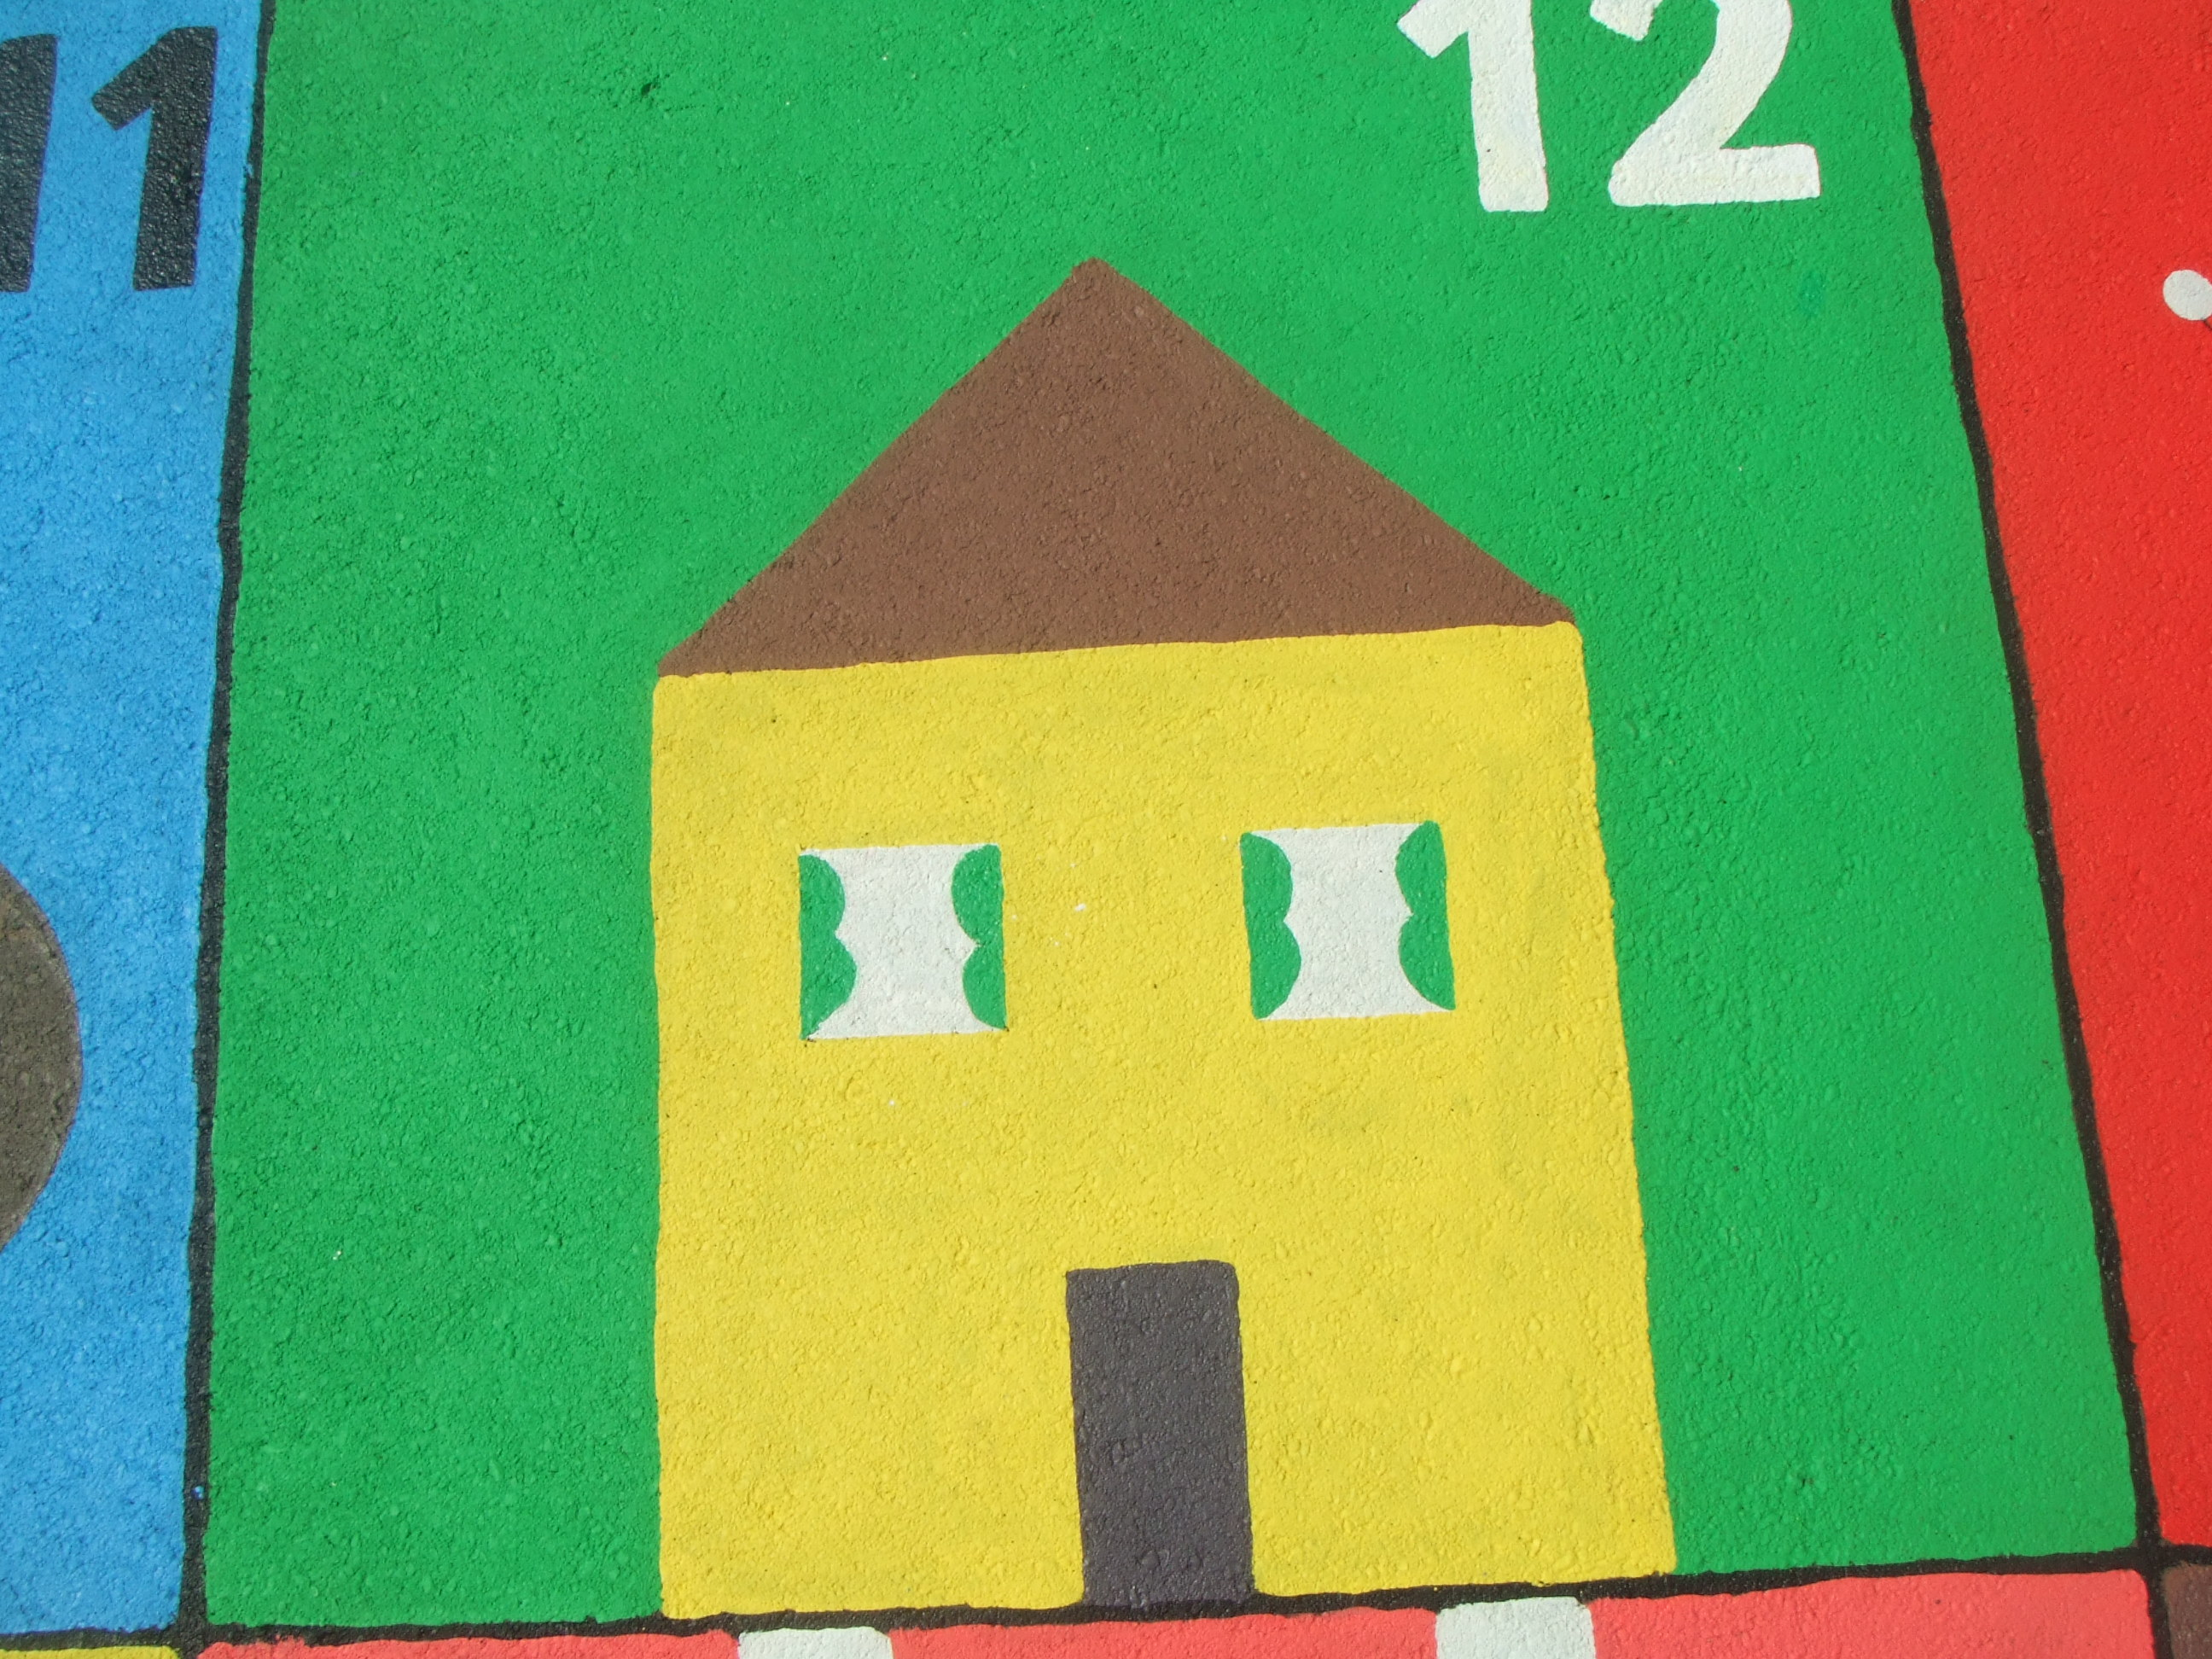 12. THE HOUSE